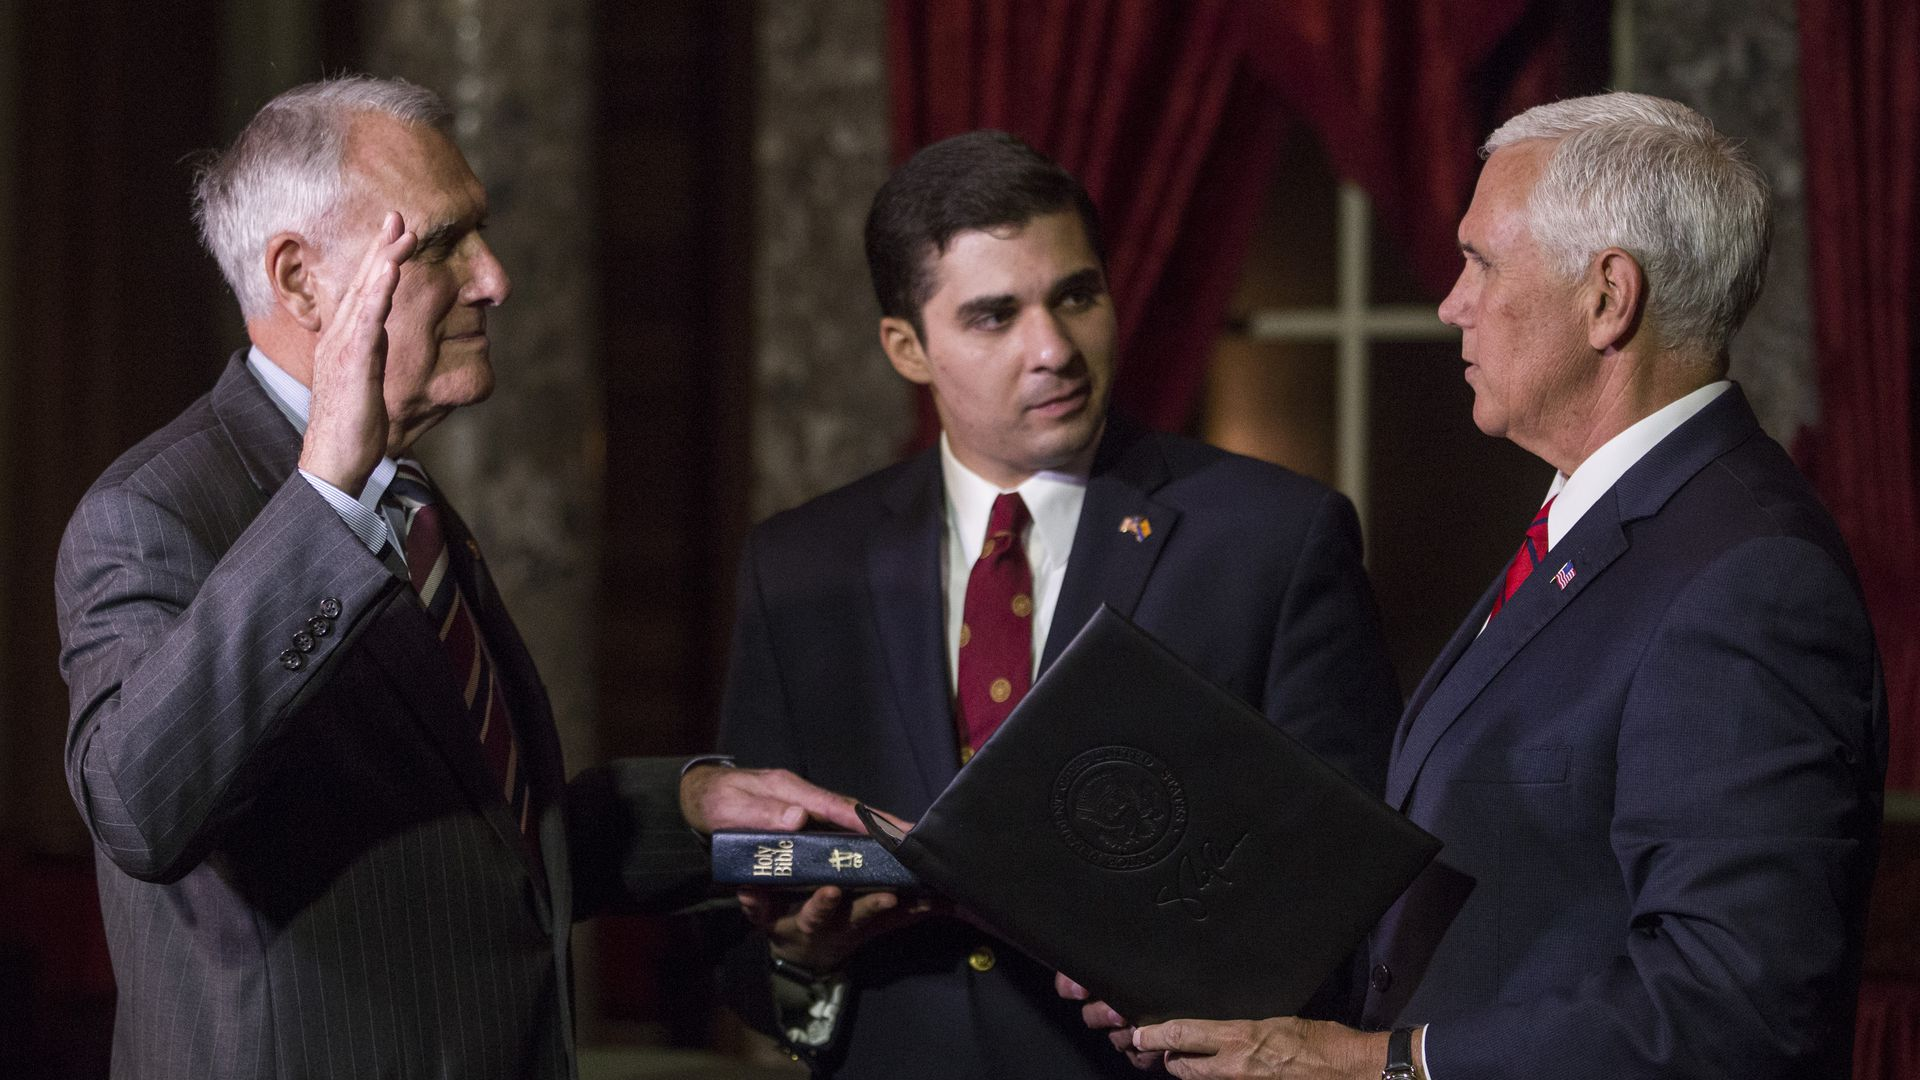 Sen. John Kyl being sworn into office by Mike Pence